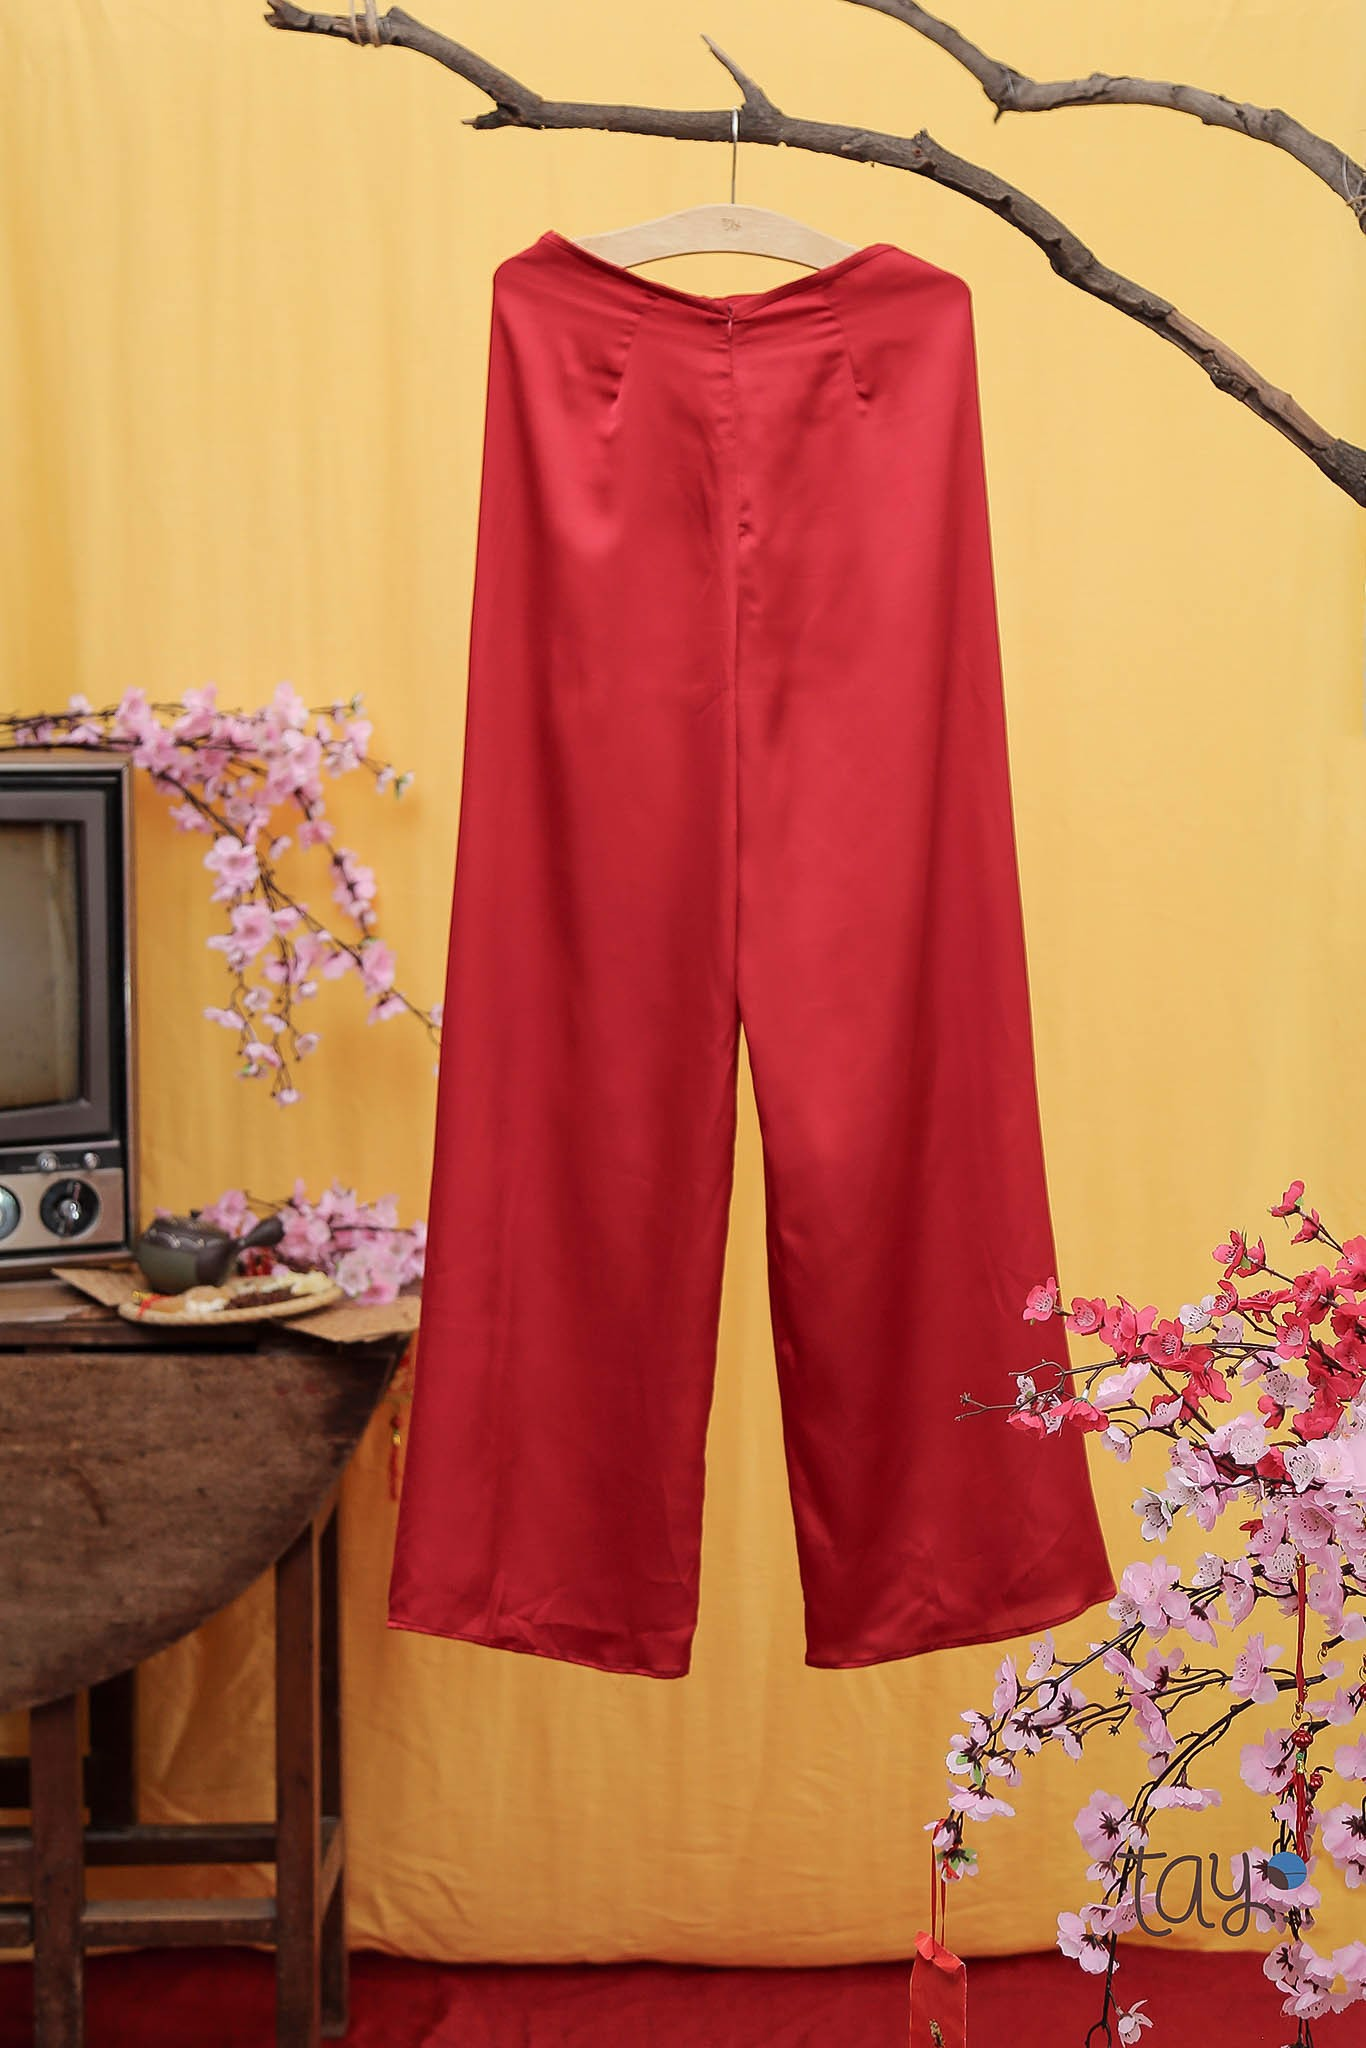 RED SATIN PANTS